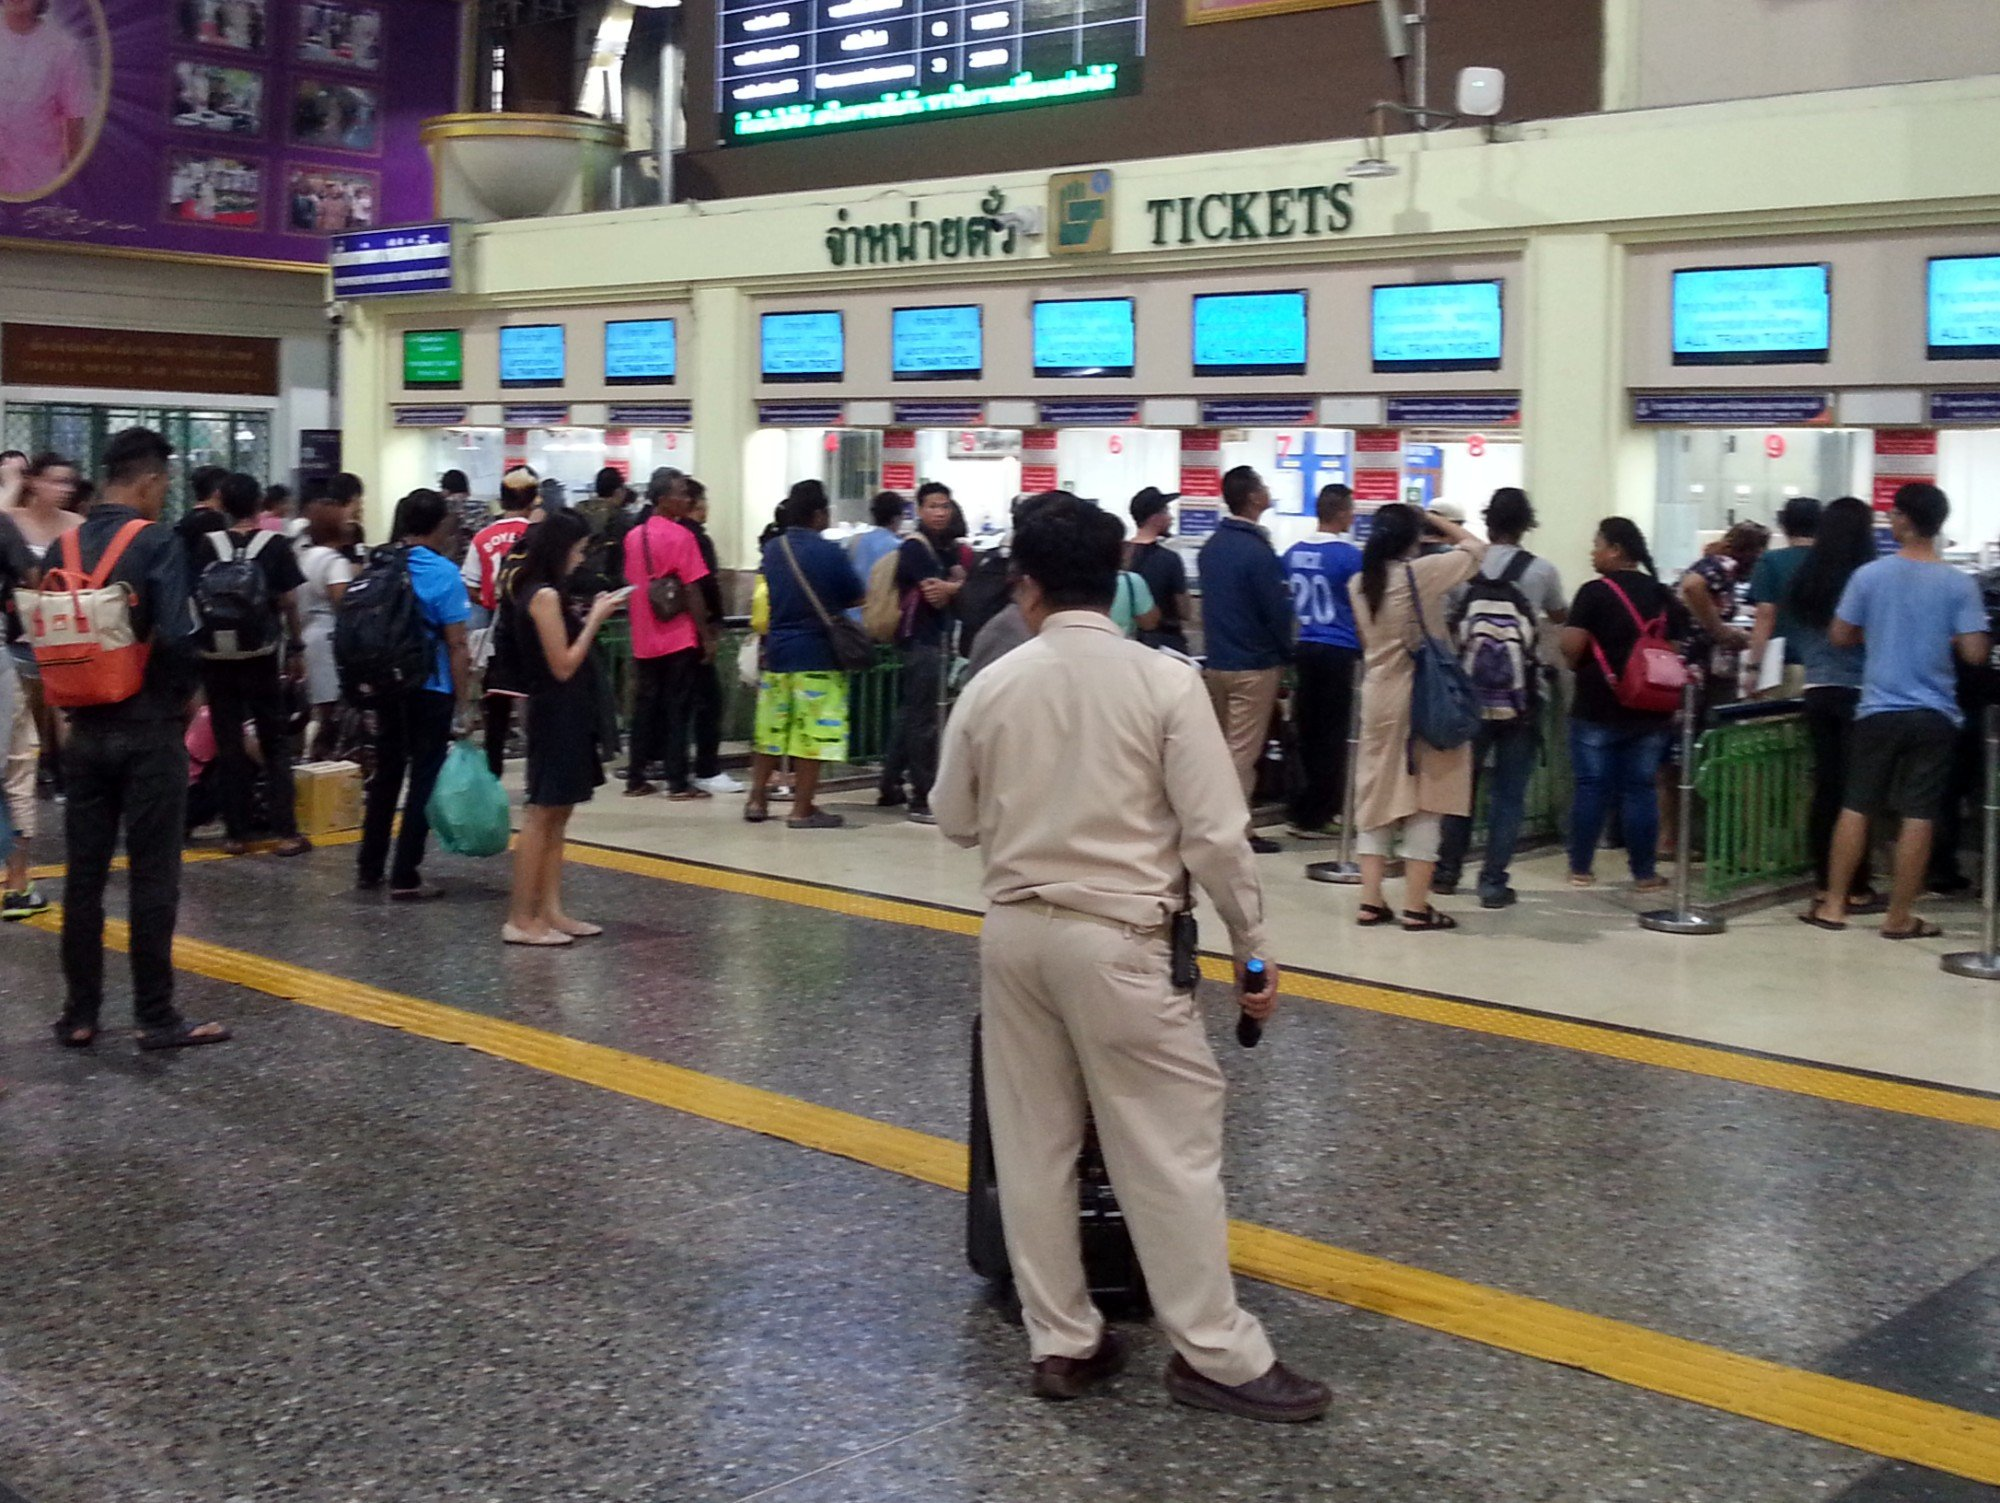 The ticket counters get busy during Songkran